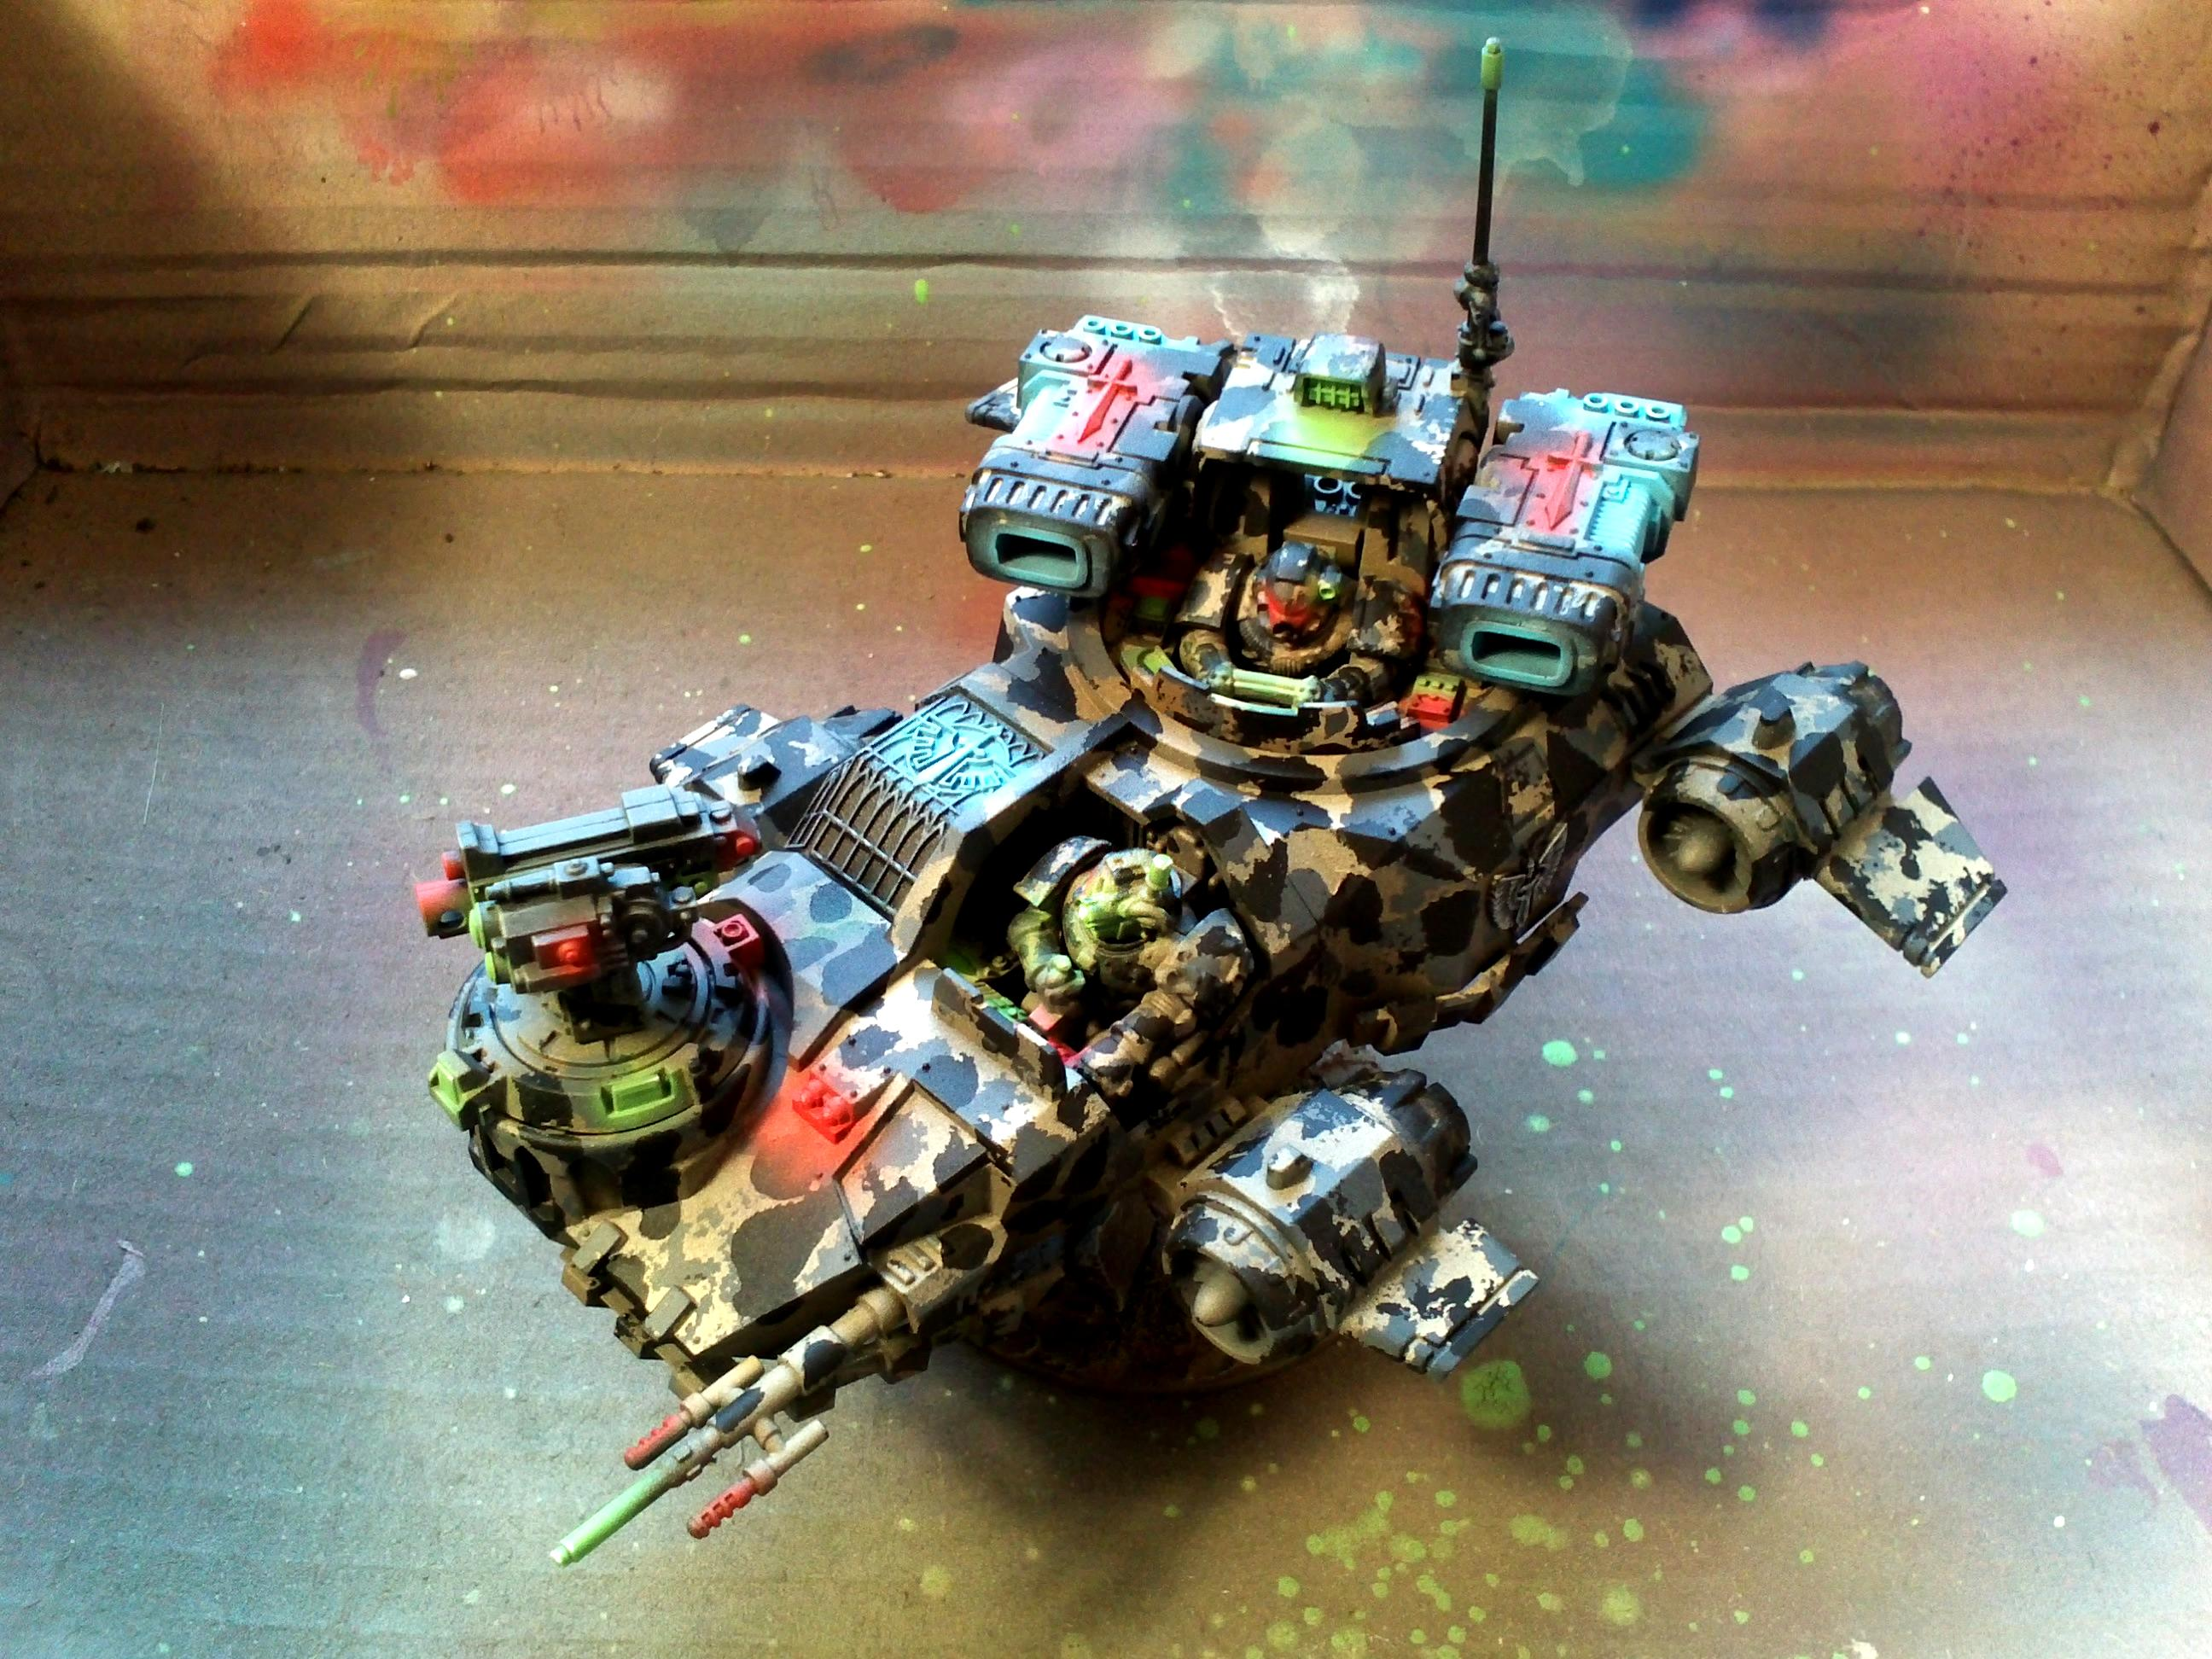 Airbrush, Camouflage, Dark Angels, Object Source Lighting, Space Marines, Warhammer 40,000